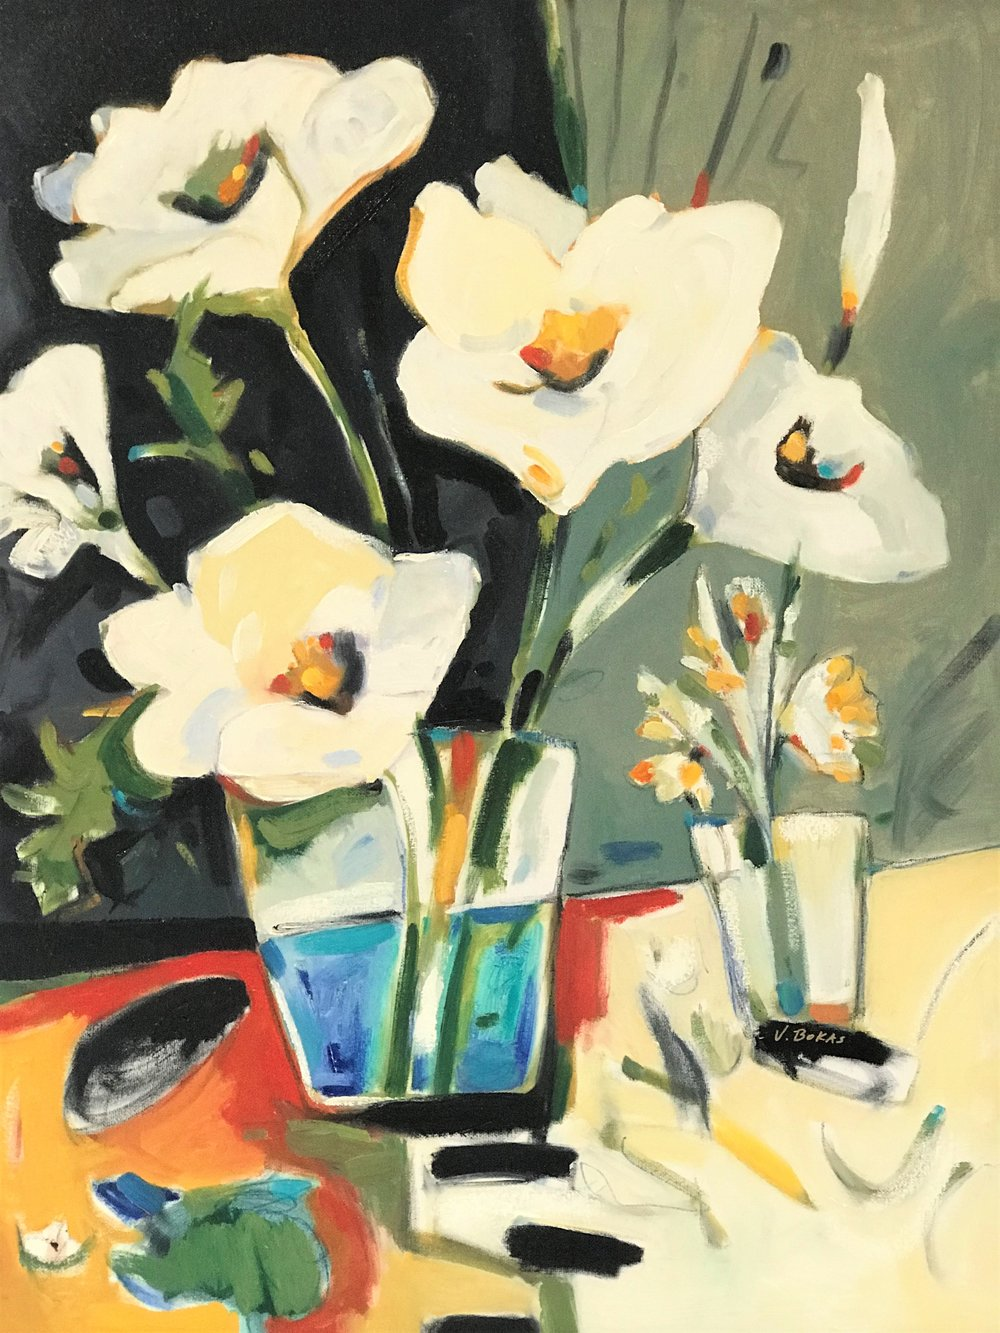 Clams, Shells & White Flowers by artist Victor Bokas available at Canary Gallery